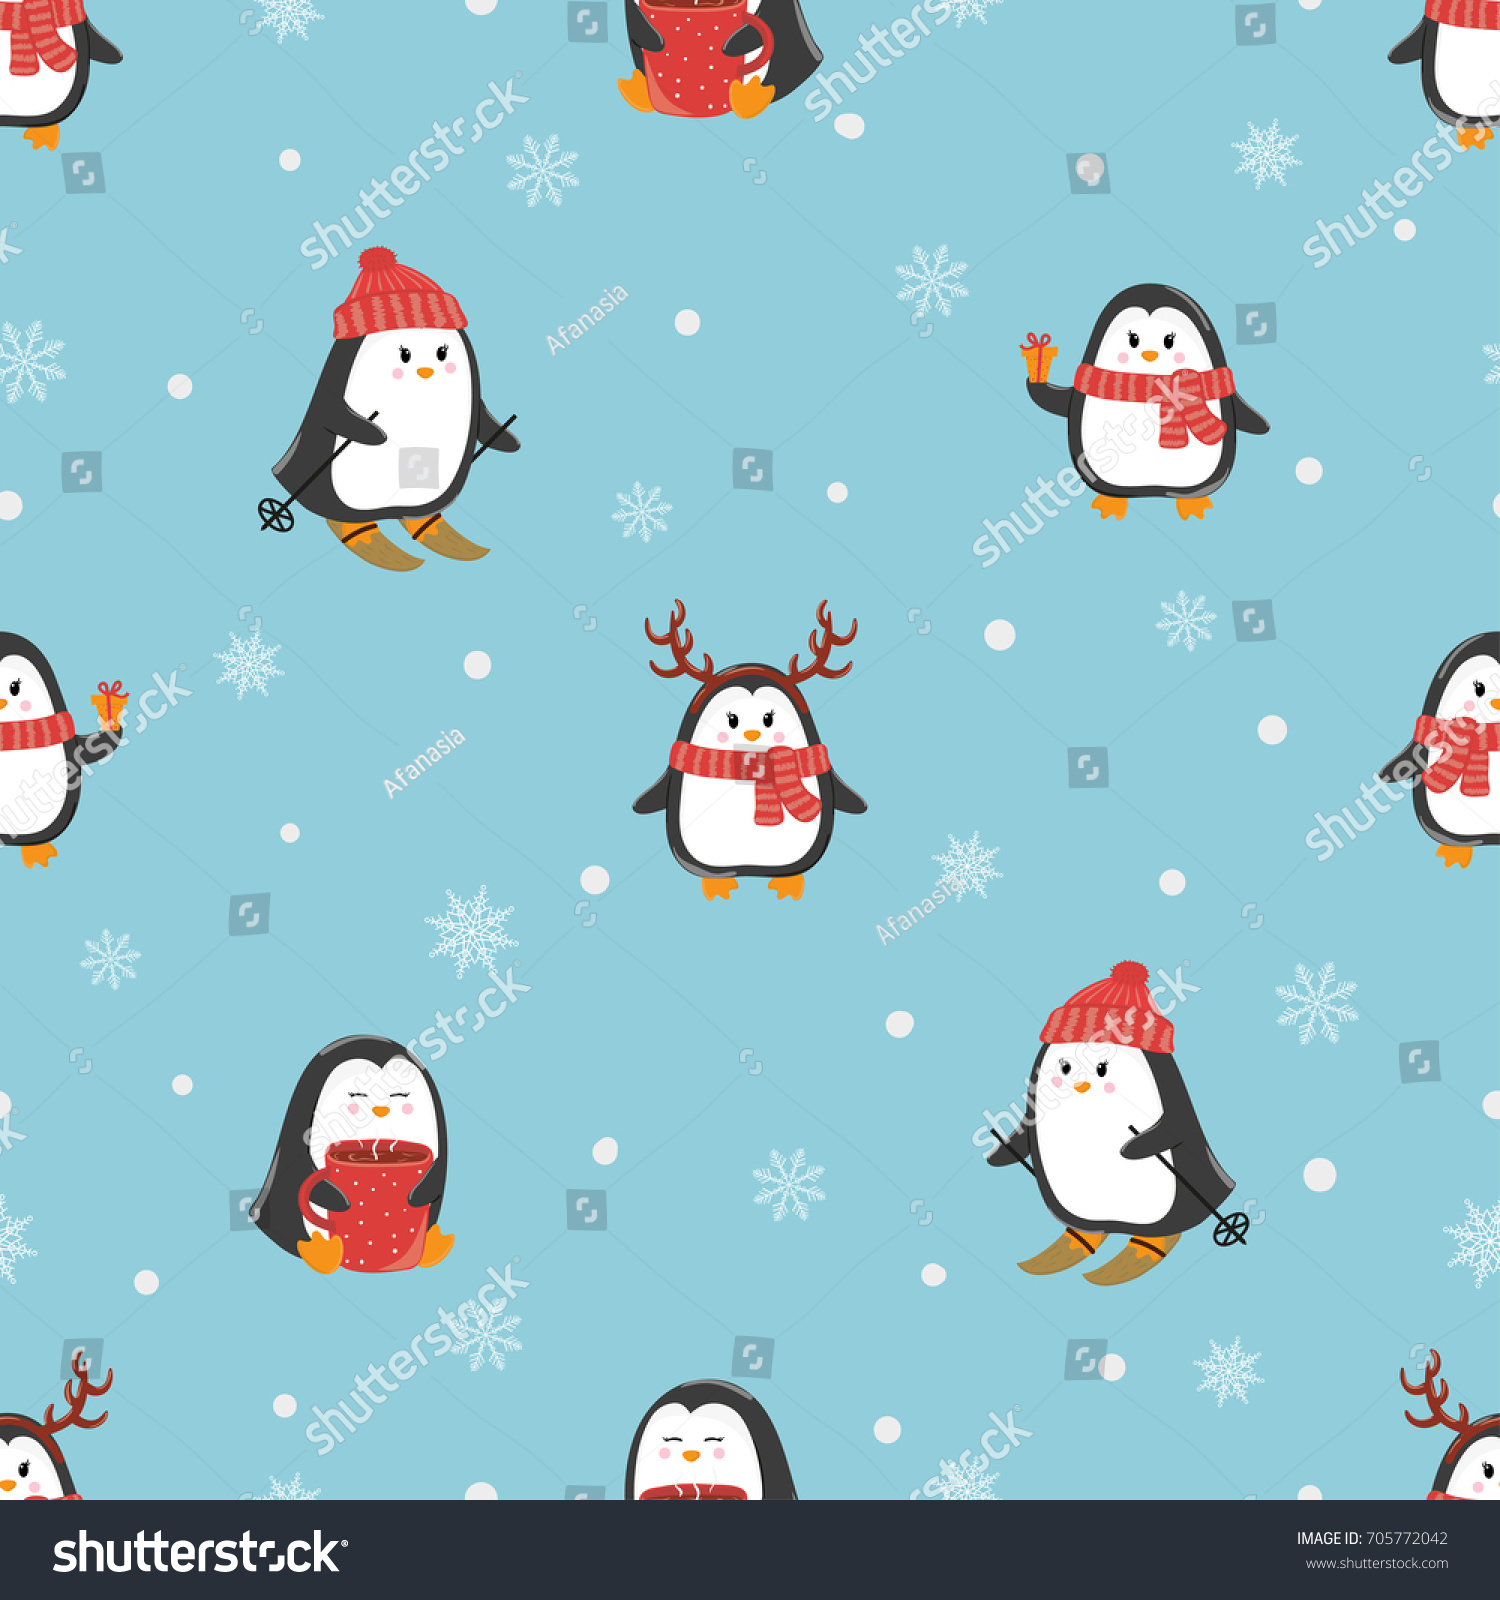 Cute Cartoon Penguins Seamless Pattern Merry Christmas And Happy